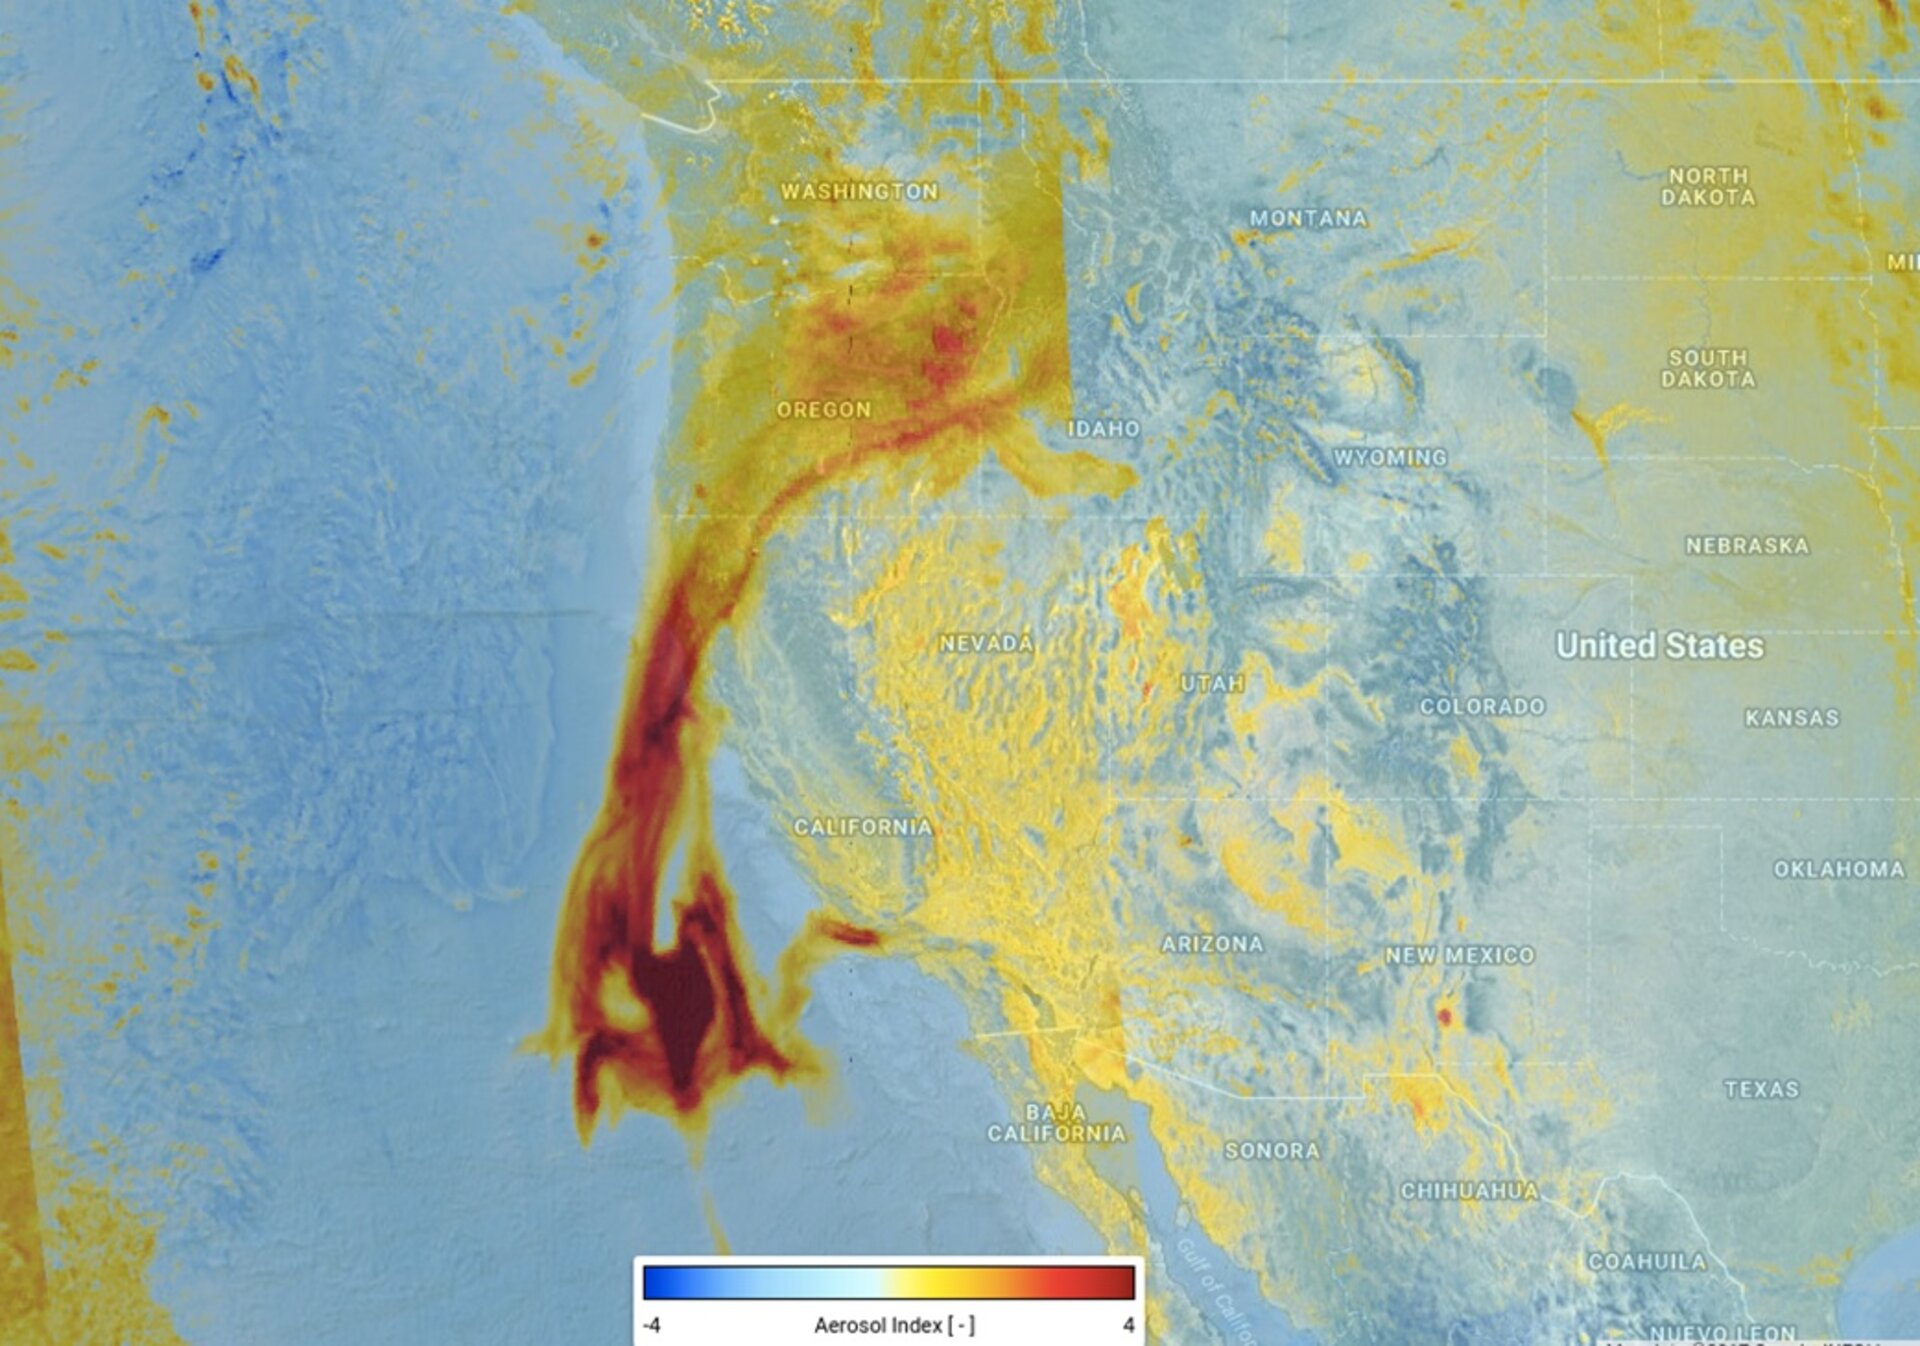 Tracking aerosols from California's fires